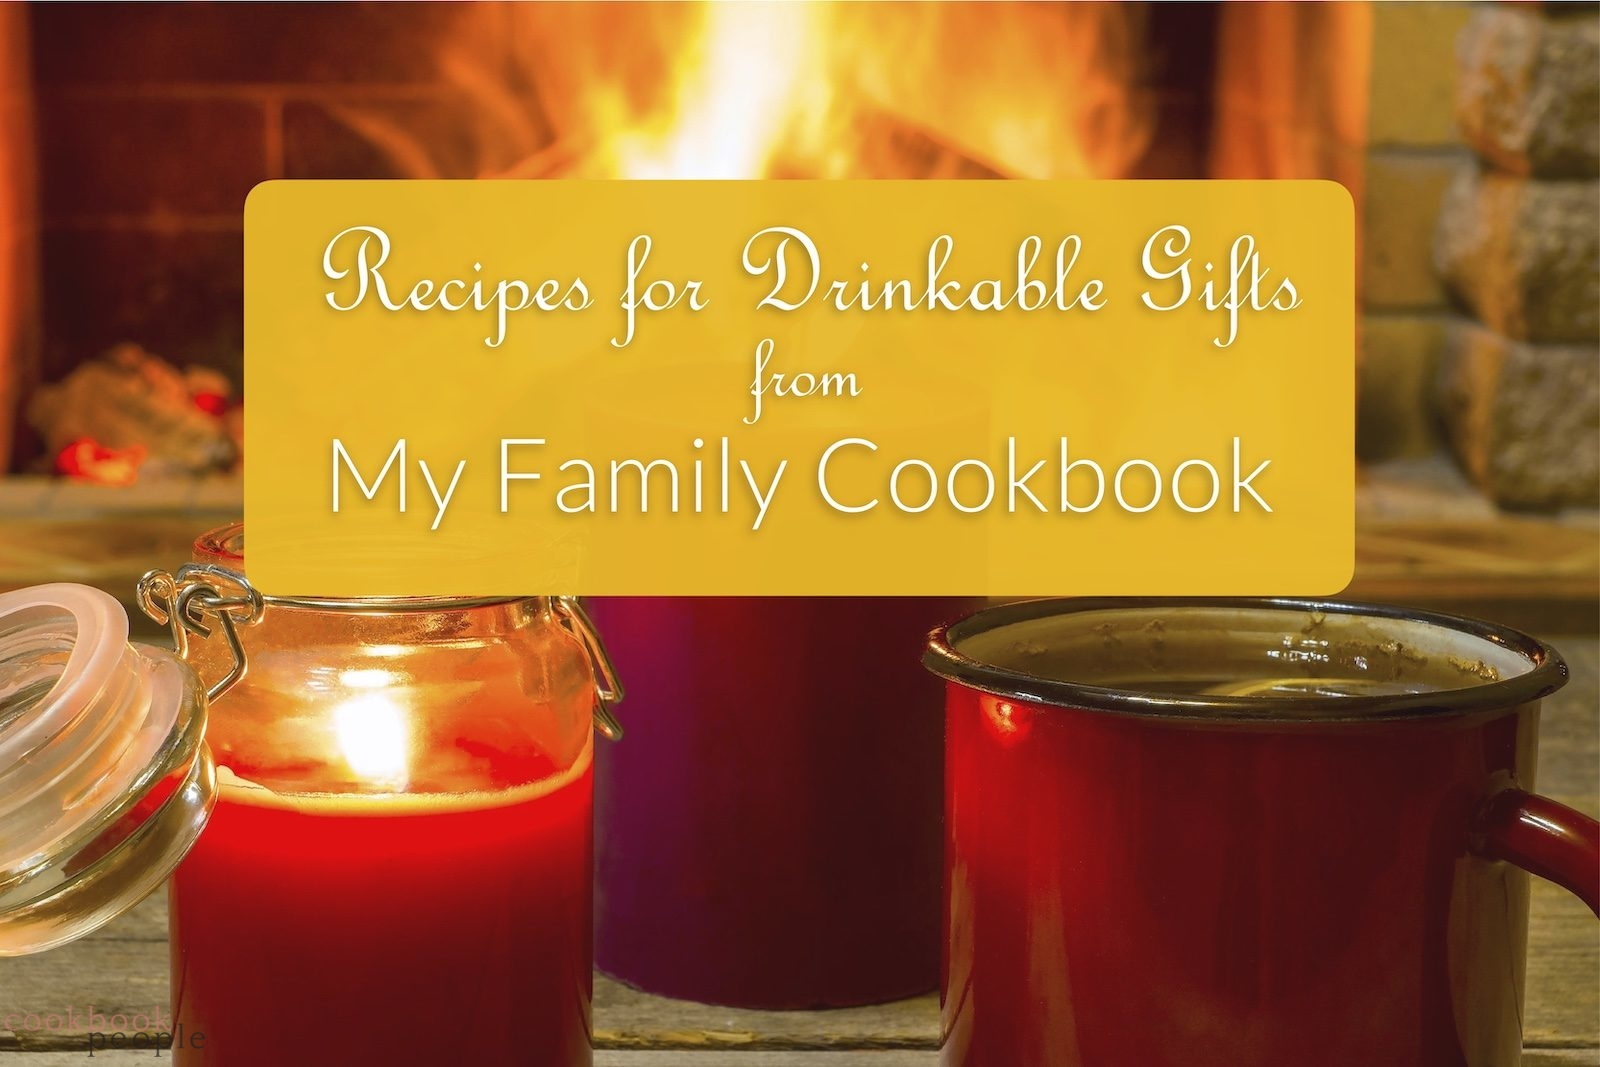 red mug, candle and roaring fire with text: Recipes for Drinkable Gifts from My Family Cookbook